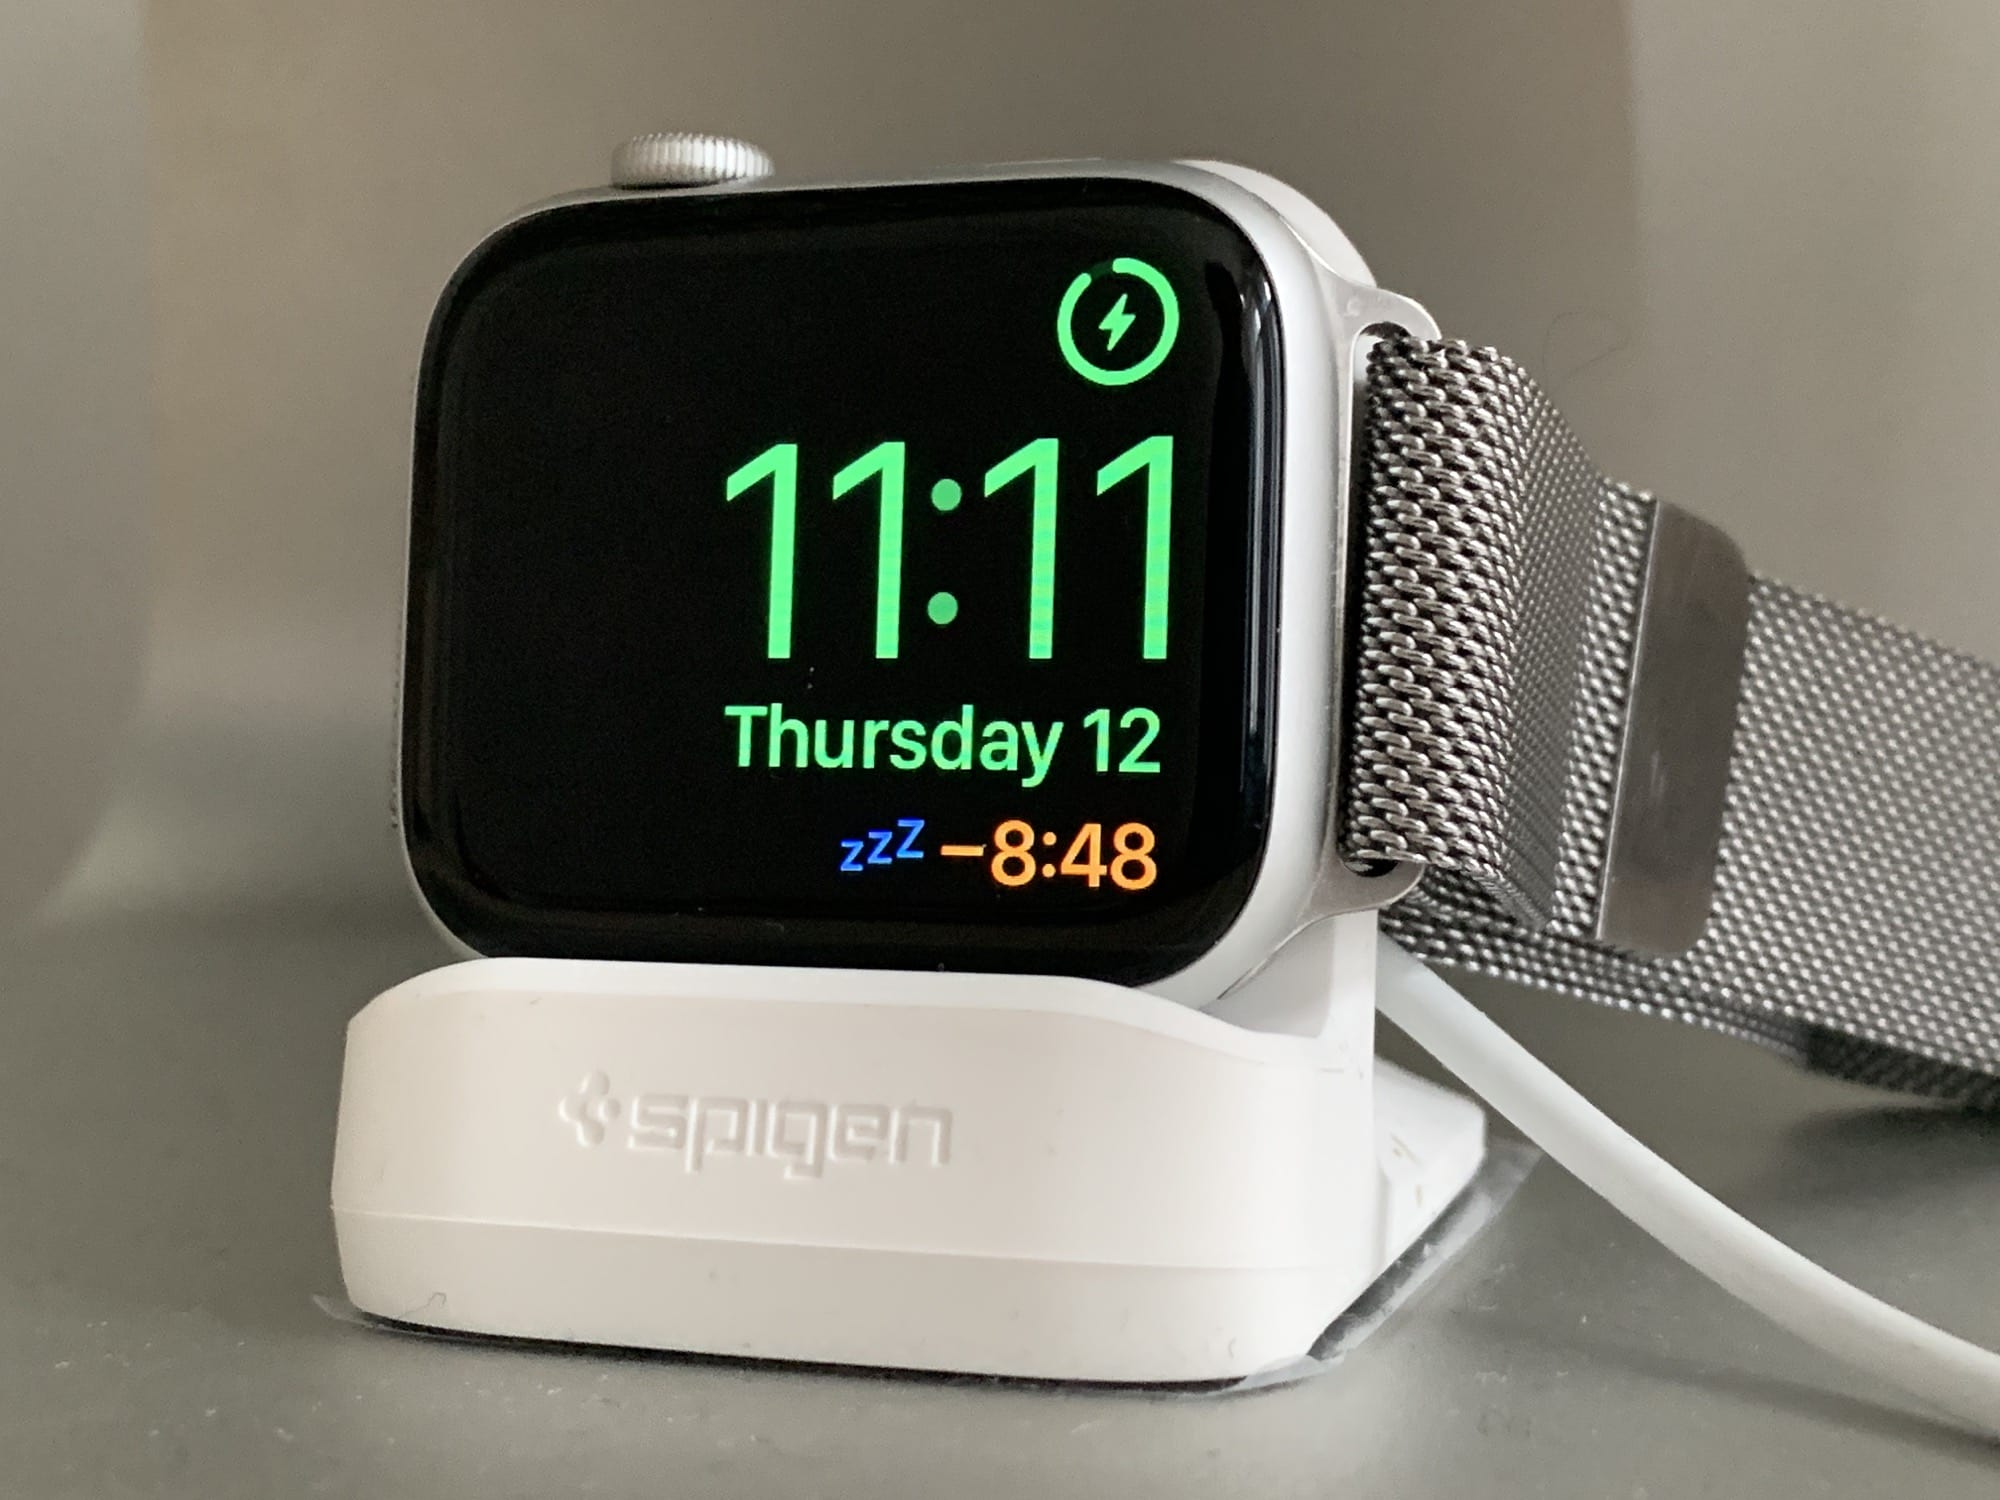 Zzzzzz. The Apple Watch's nightstand mode even has snooze.